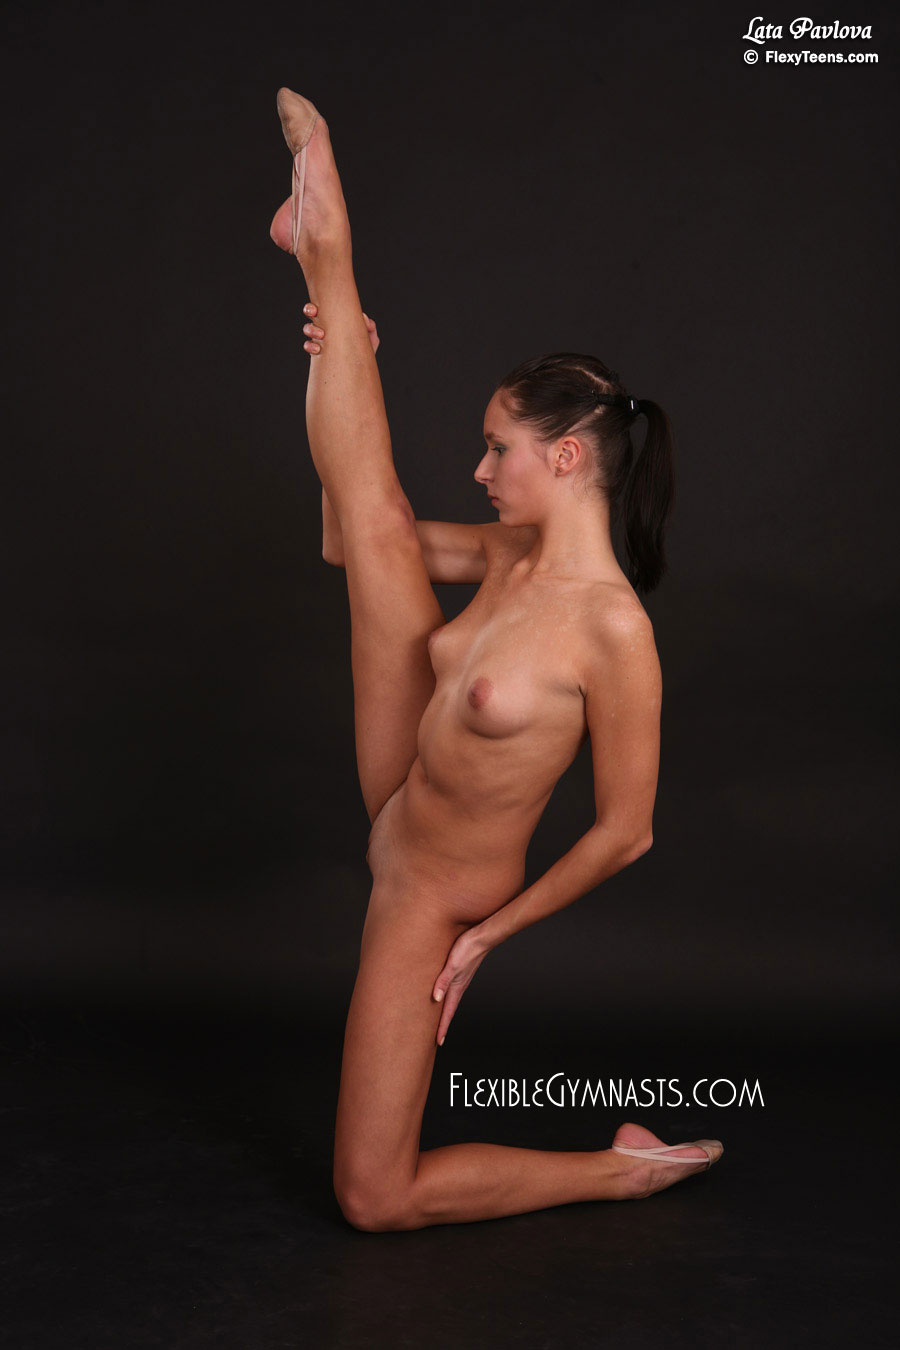 Nude Gymnastic Flexible